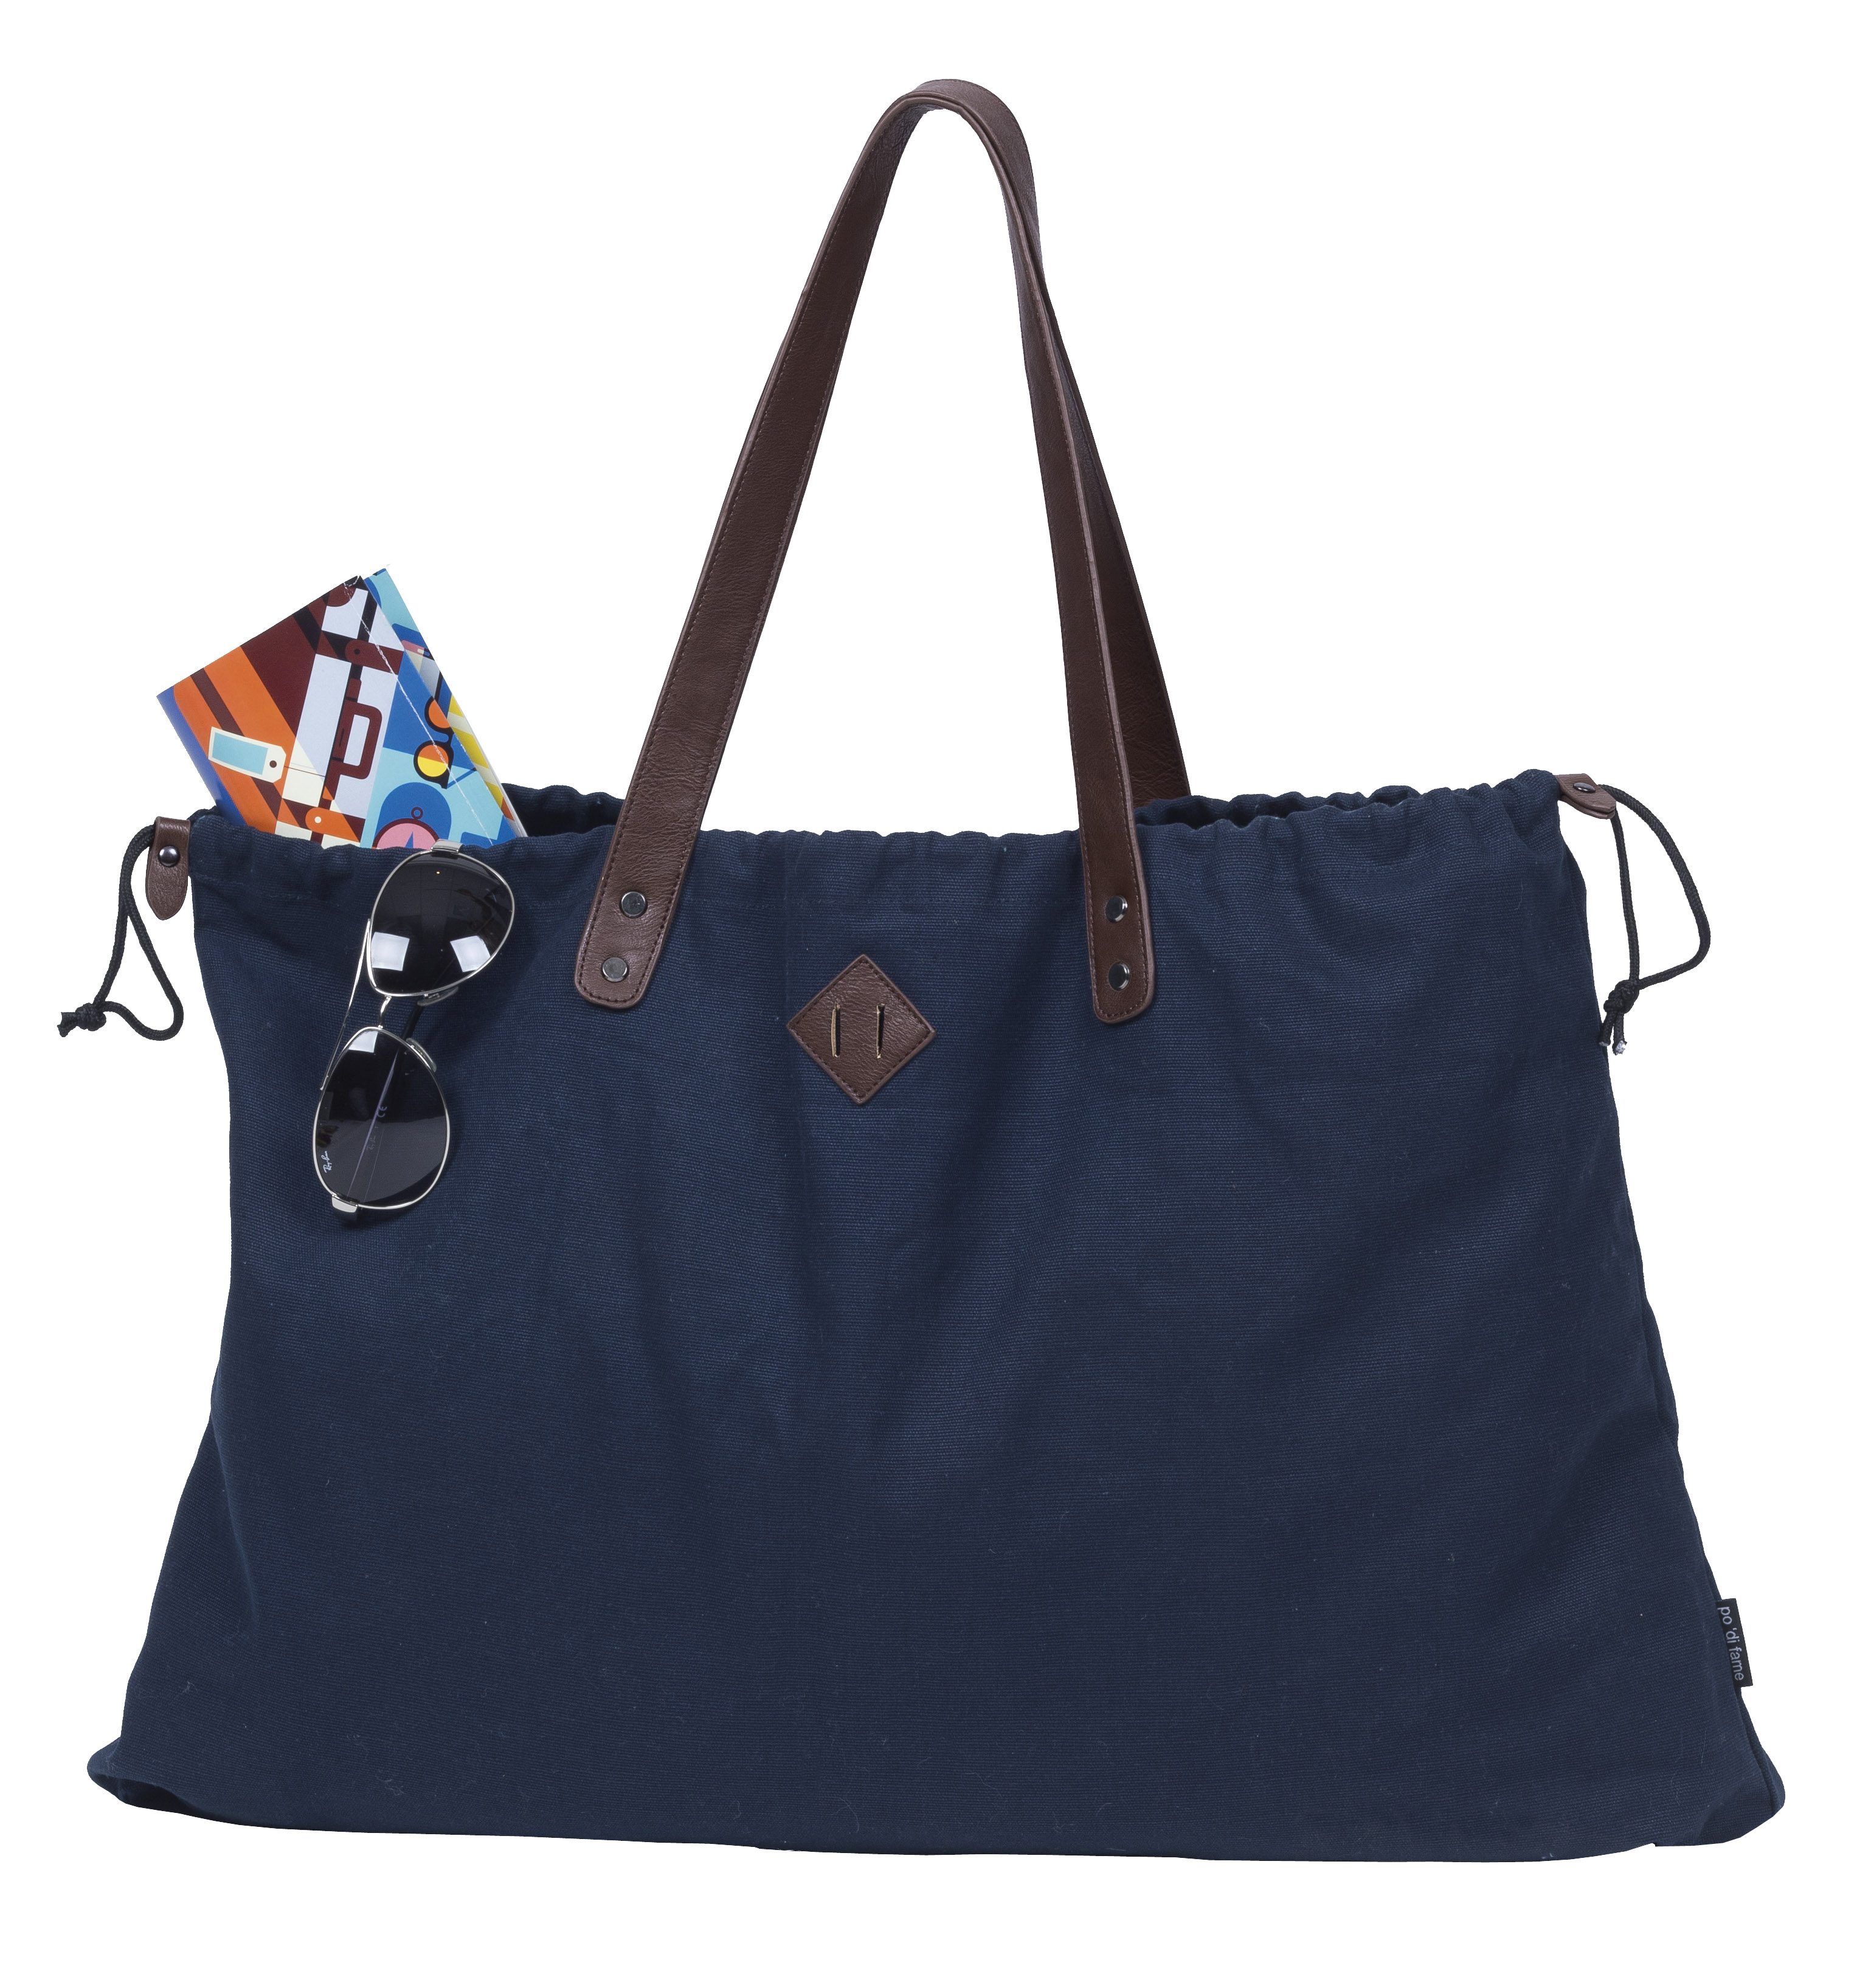 Promotional Product HARPER FASHION TOTE